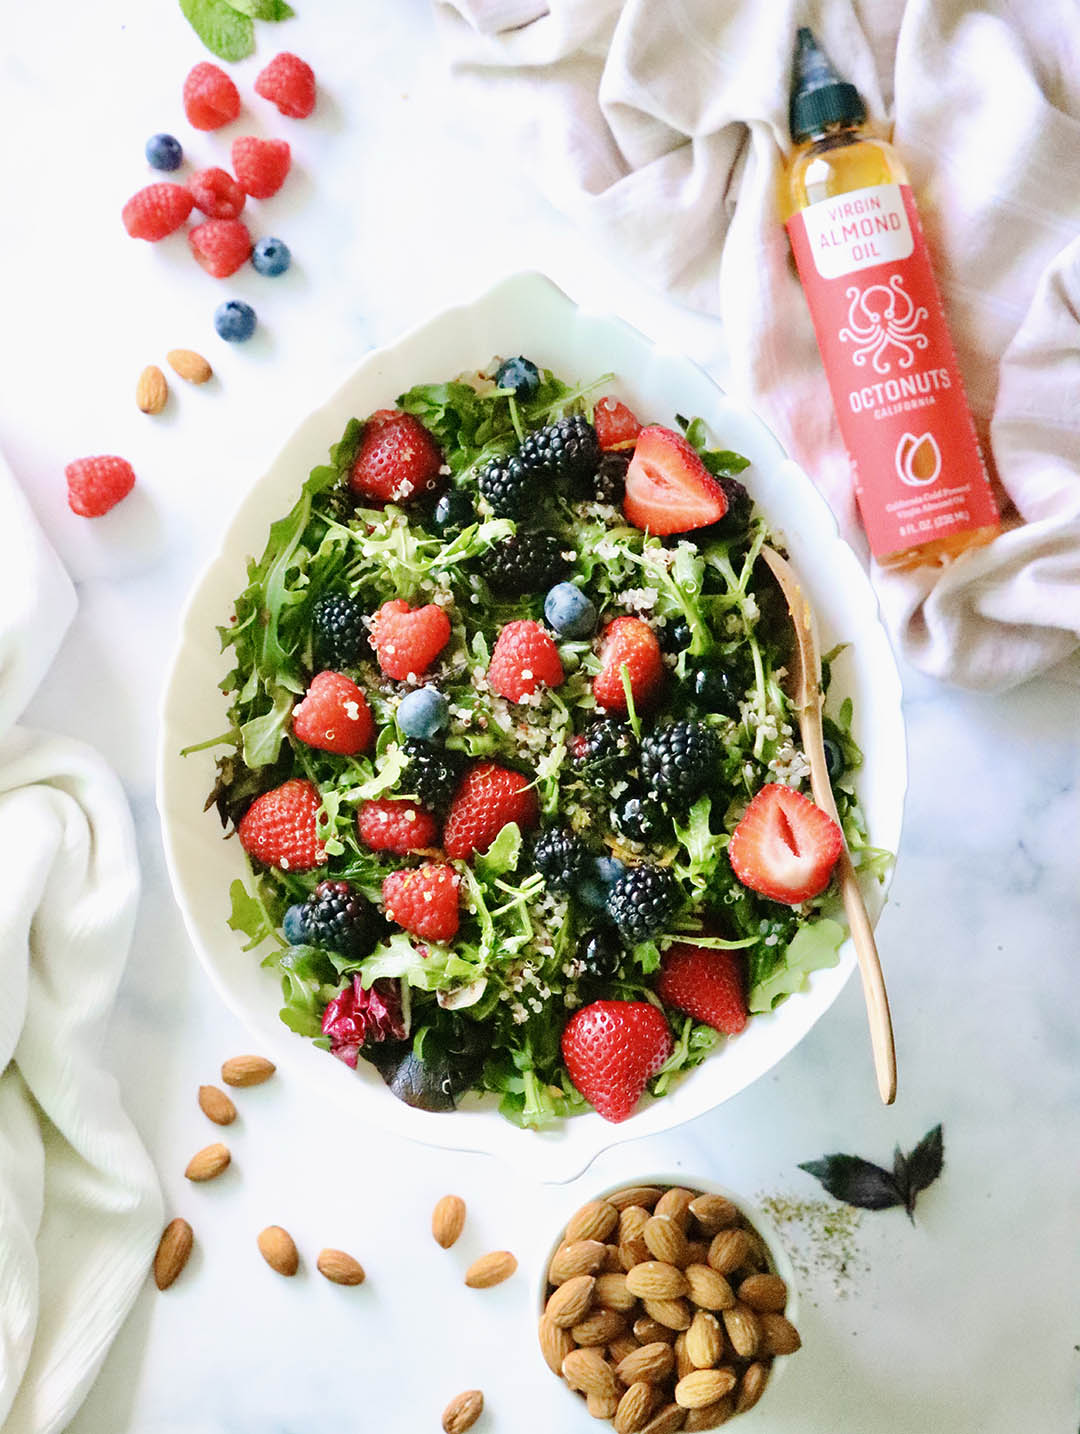 Berry Quinoa Salad with Octonuts California Almond Oil Dressing